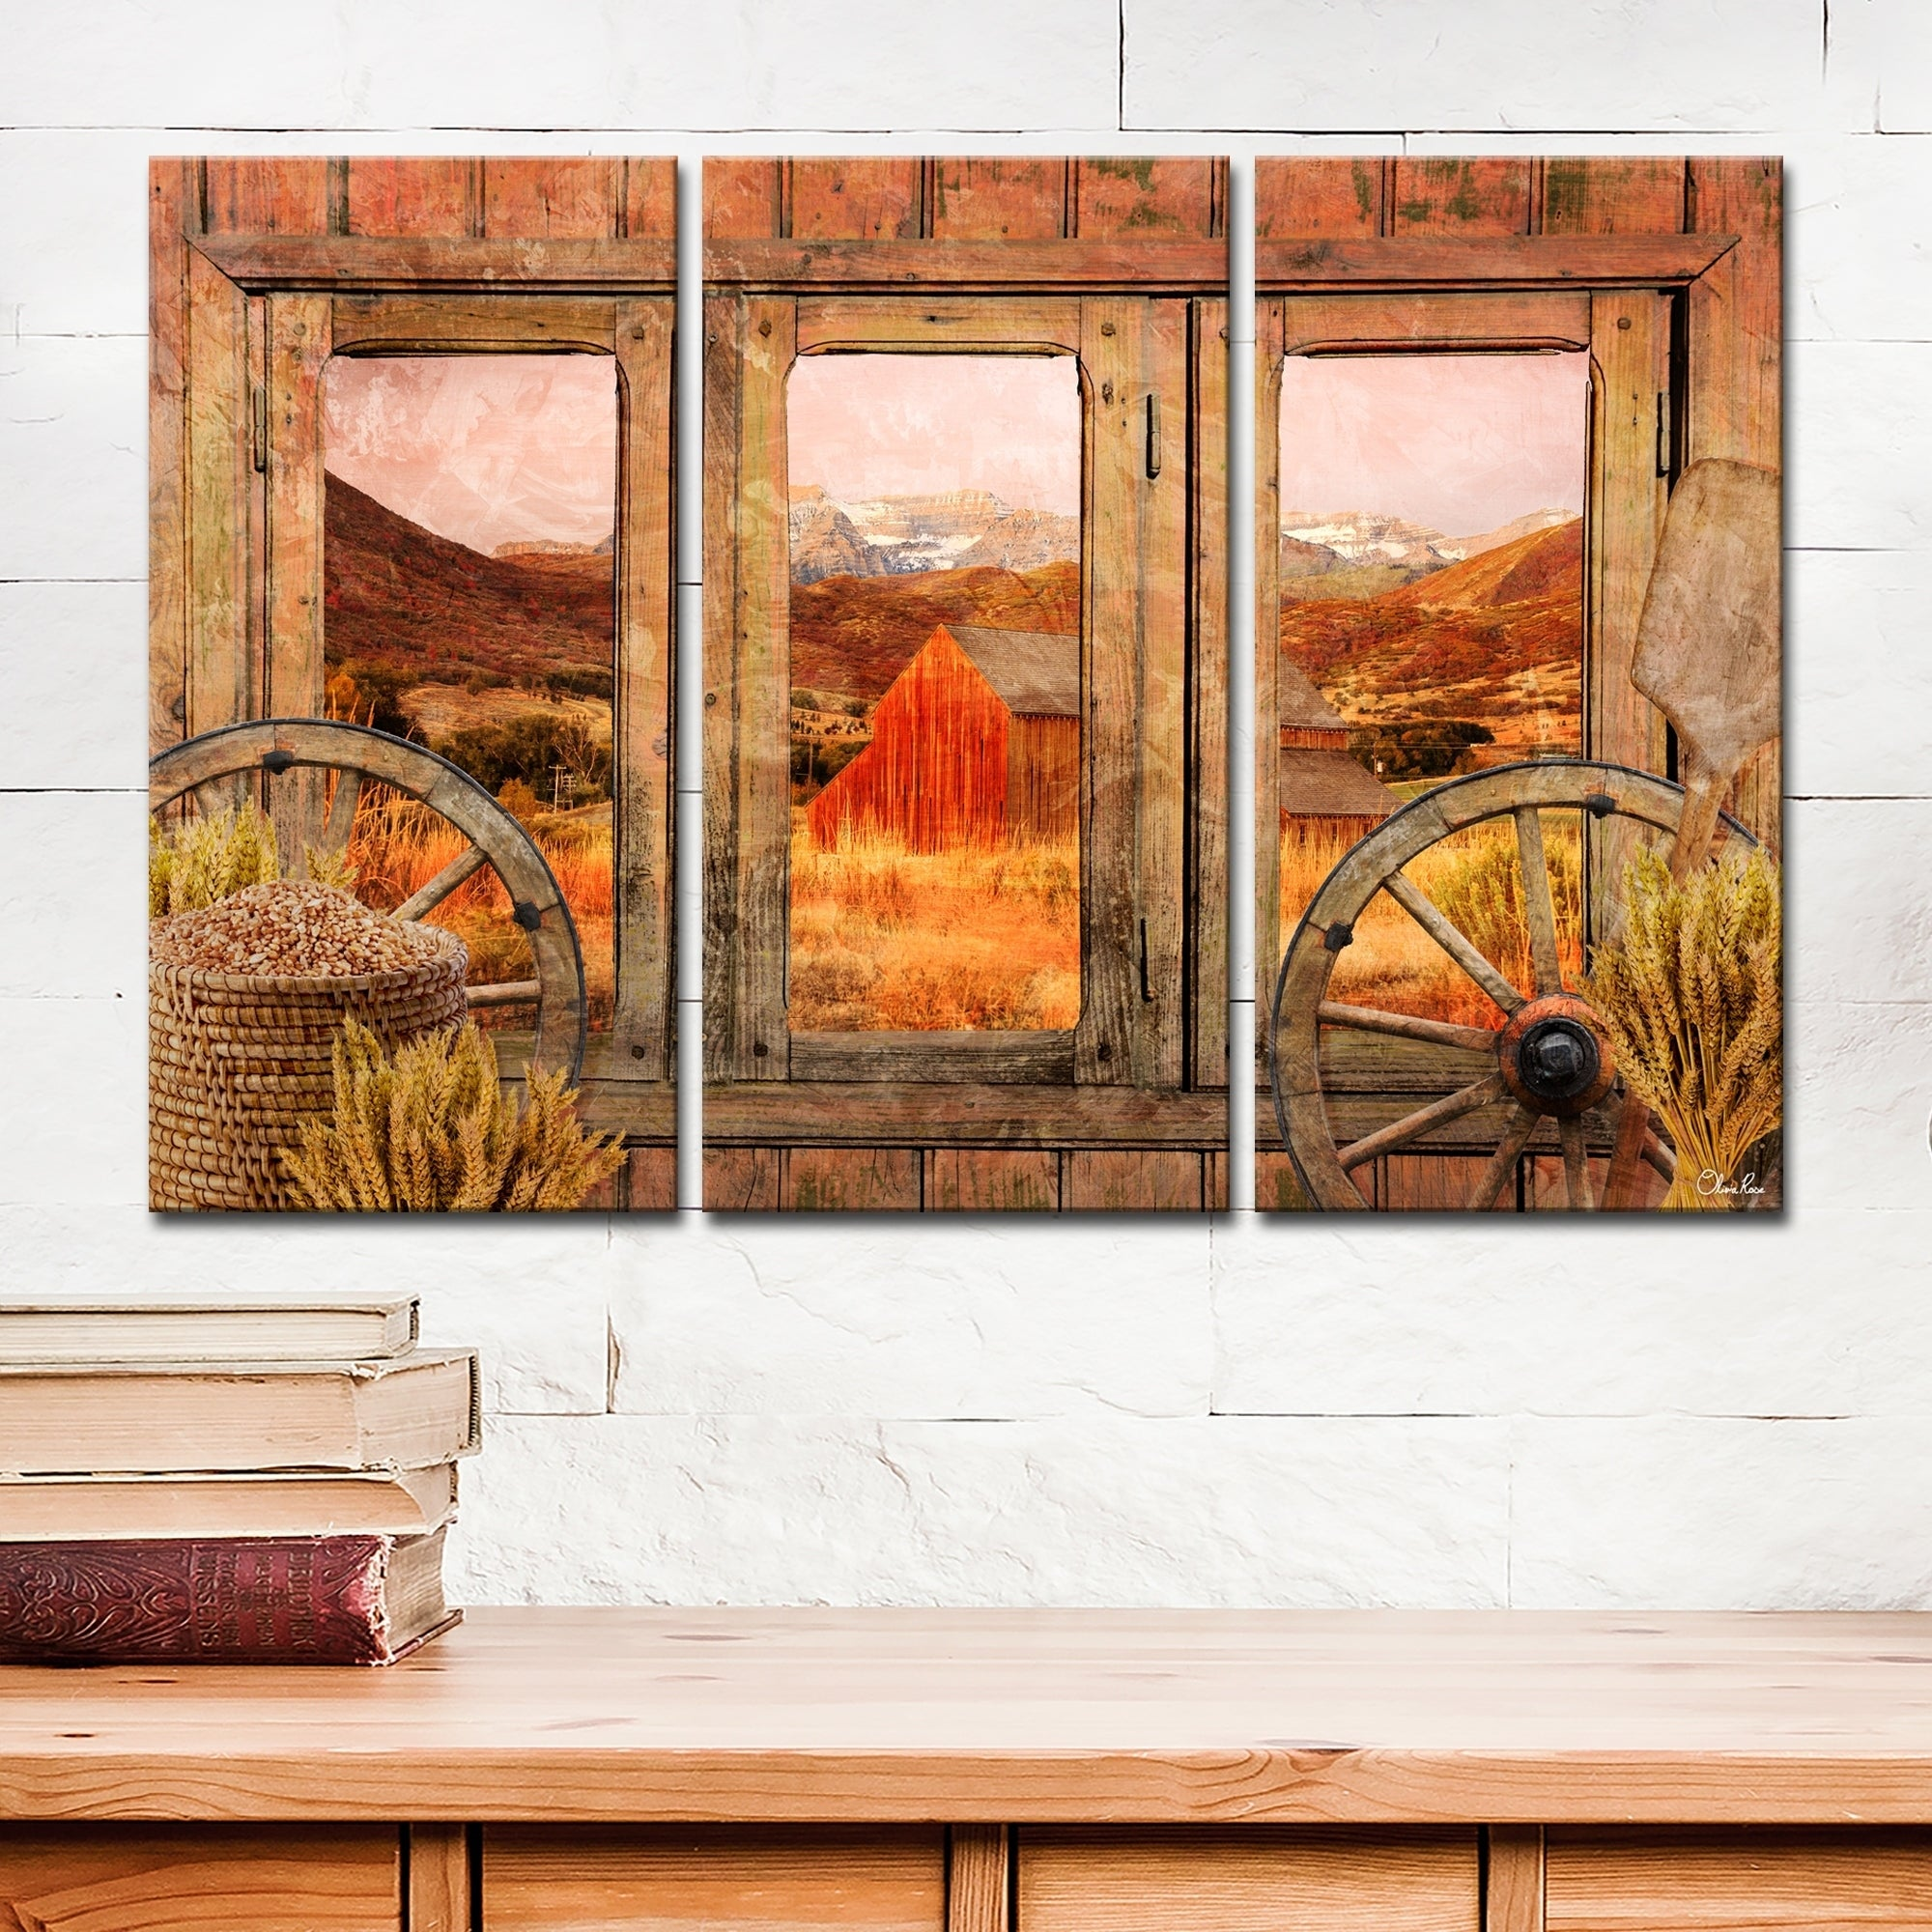 Shop Ready2hangart Rustic Farmhouse 3 Piece Wrapped Canvas Wall